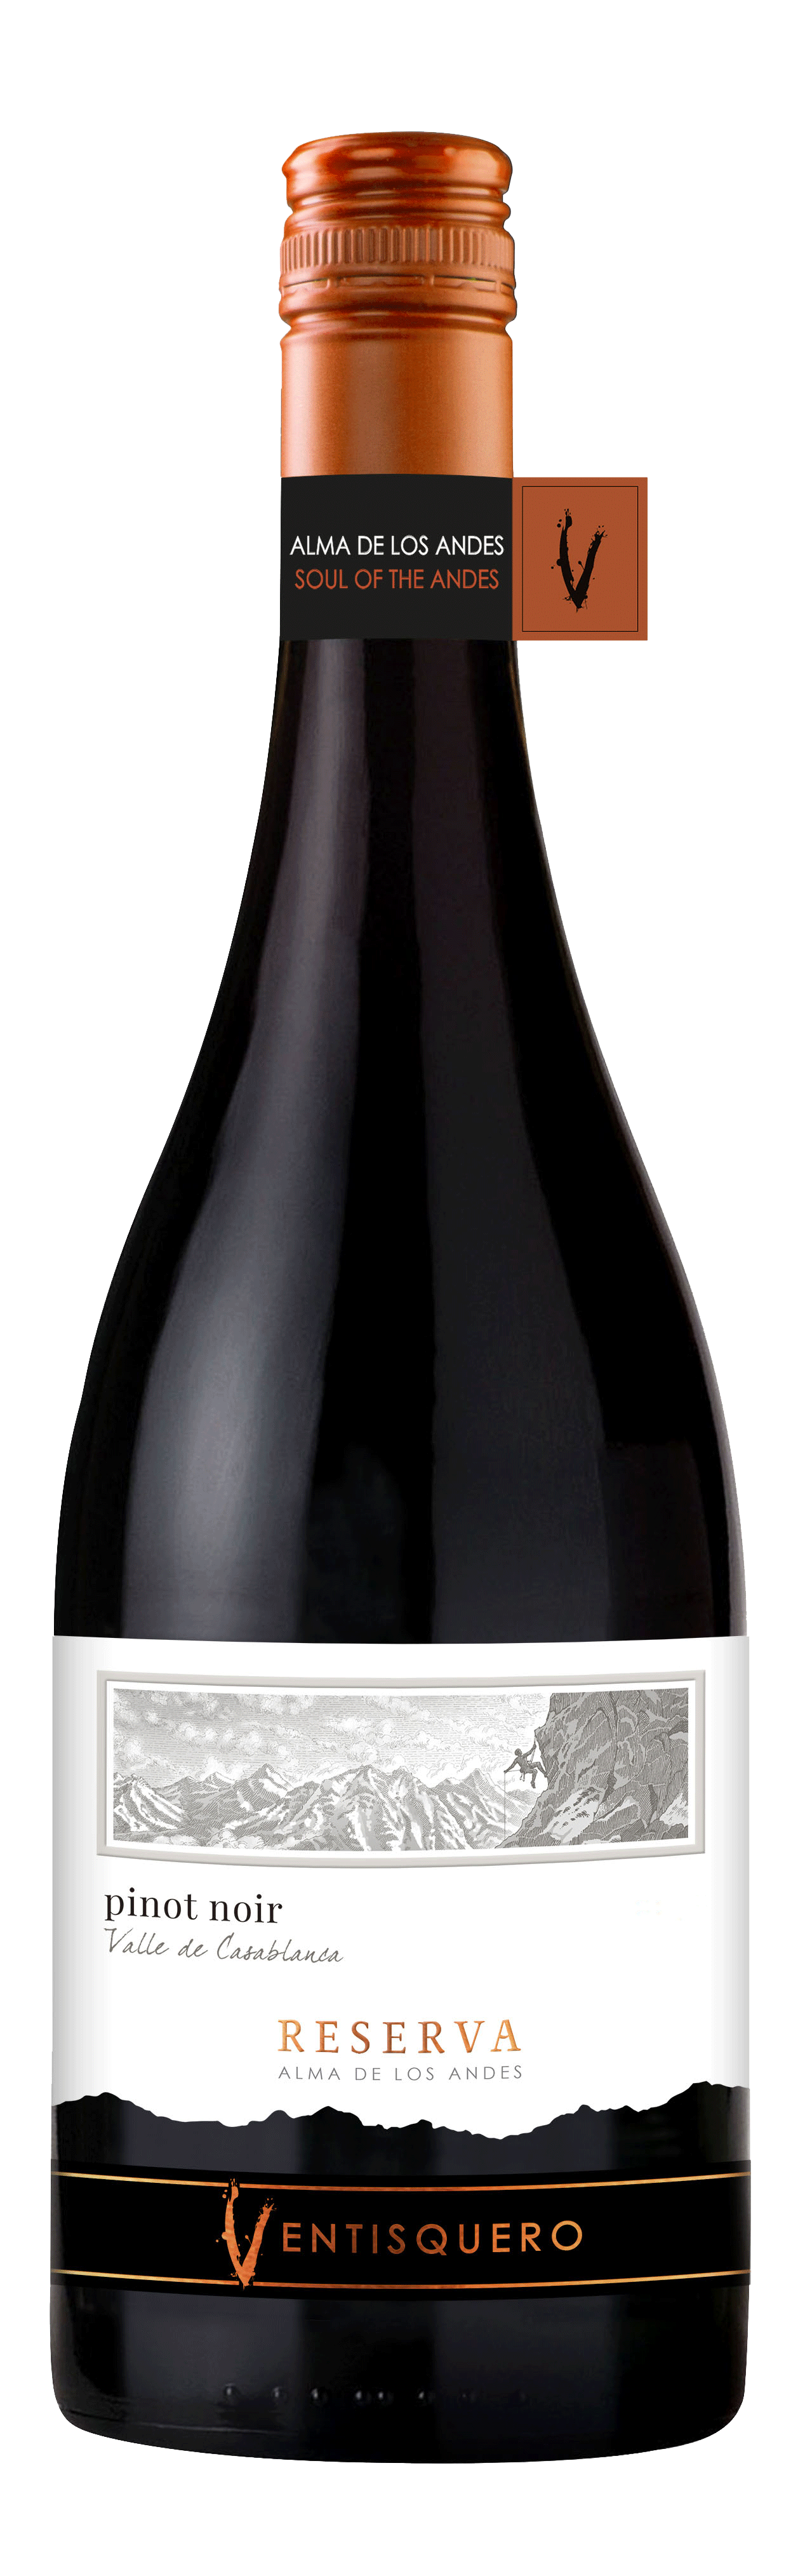 What Food Is Good With Pinot Noir